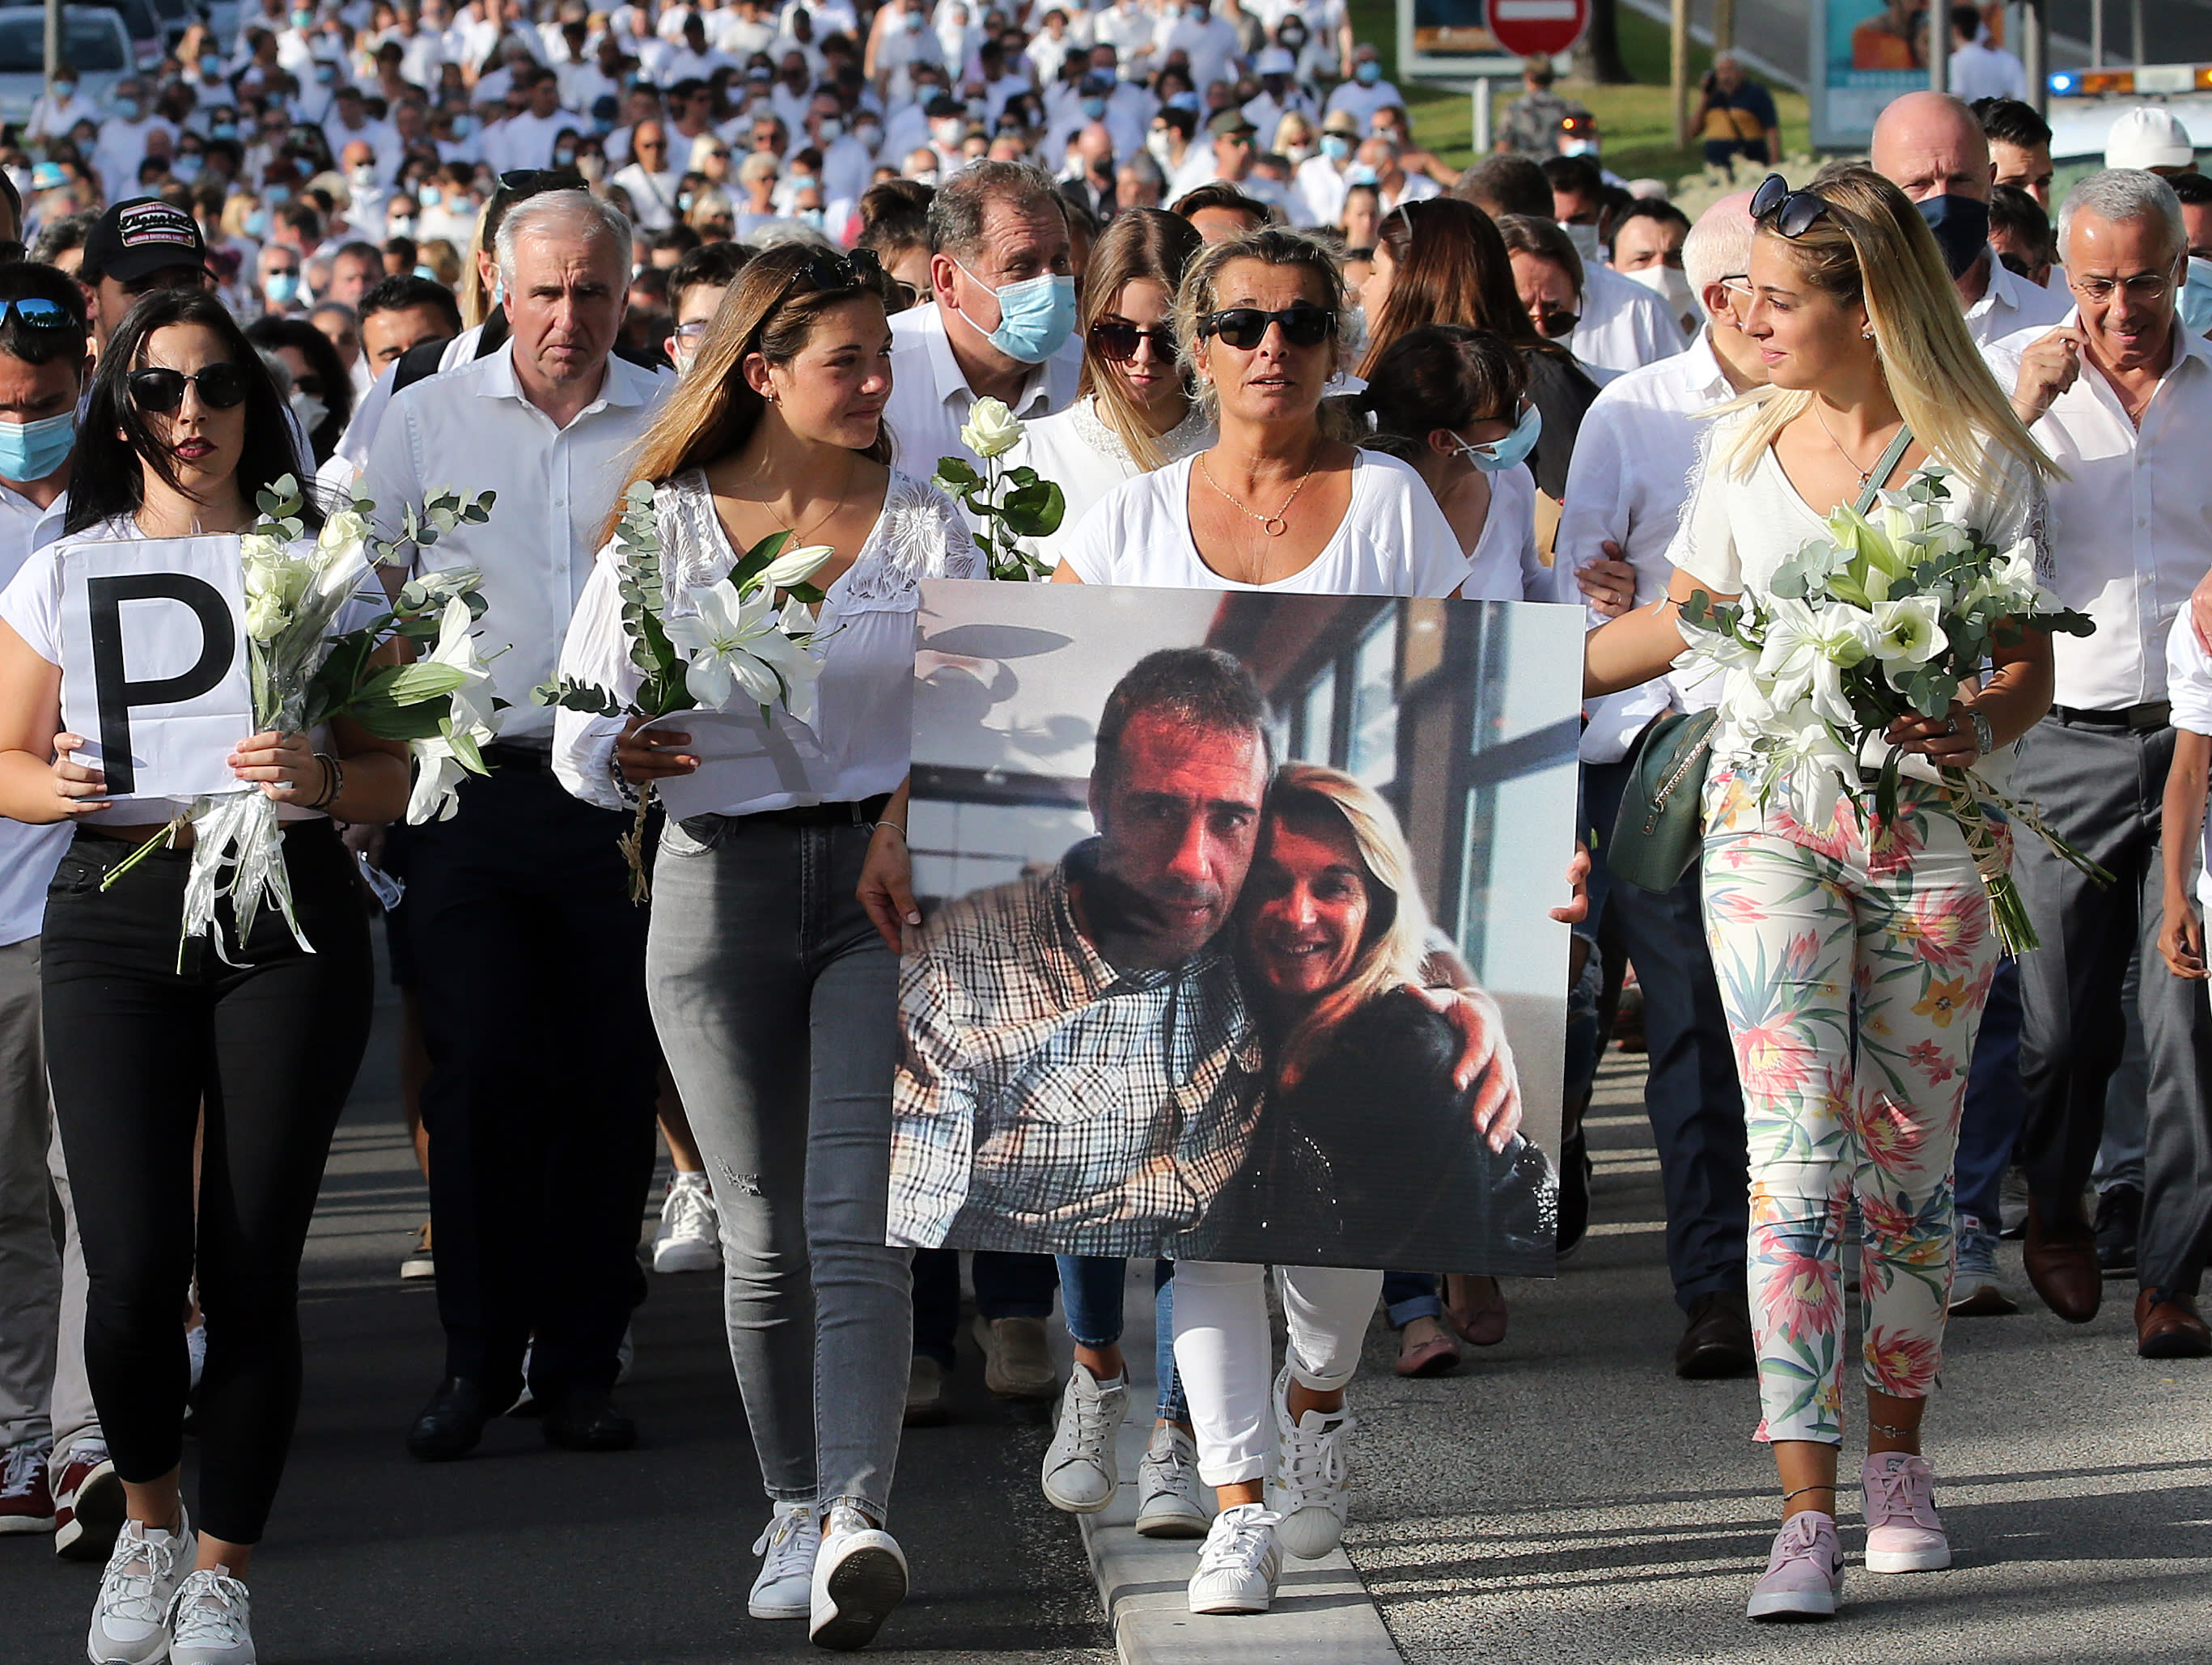 """This July 8, 2020 file photo shows Veronique Monguillot, wife of Philippe Monguillot, a bus driver who was attacked in Bayonne on Sunday night, holding a photo of her with her husband, during a protest march in Bayonne, southwestern France. The wife of a French bus driver savagely beaten after he asked four of his passengers to wear face masks aboard his vehicle called Saturday for """"exemplary punishment"""" after he died of his injuries. (AP Photo/Bob Edme)"""